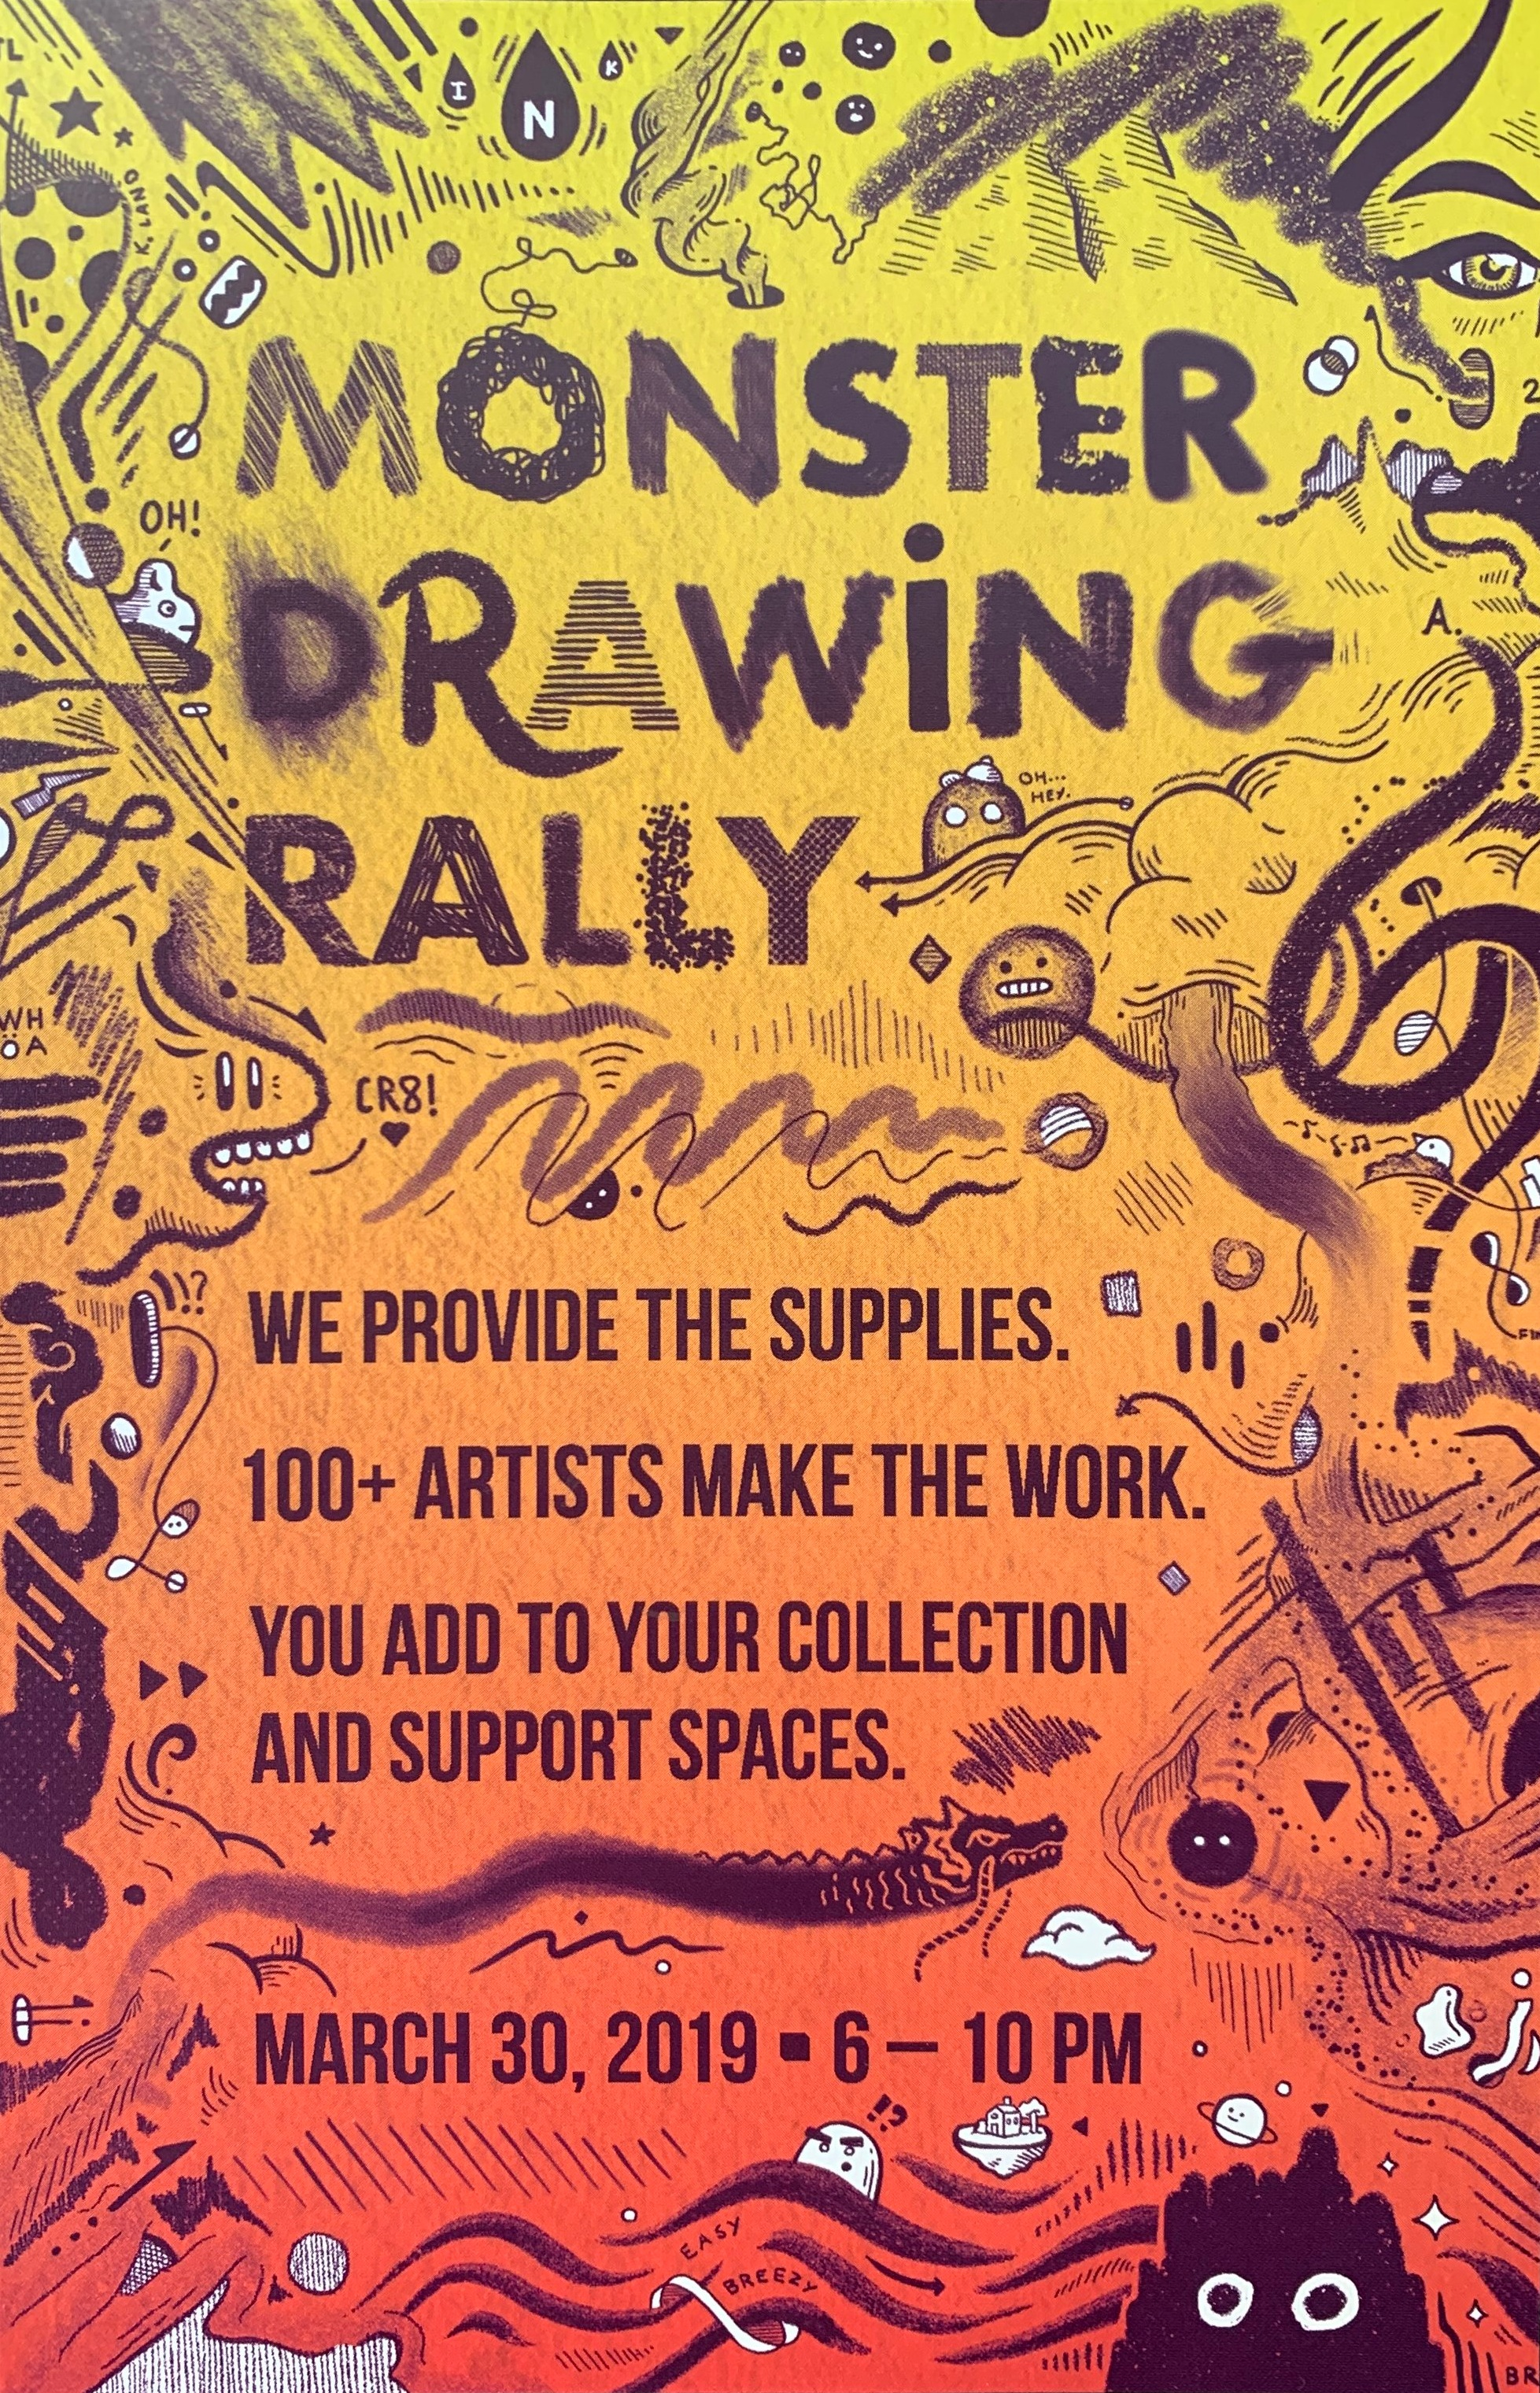 Monster Drawing Rally 2019   Saturday March 30 (6 – 10 PM) **I'll be drawing from 8-9PM **   SPACES  2900 Detroit Avenue, Cleveland, Ohio  INFO:  https://www.facebook.com/events/2222999227948784/